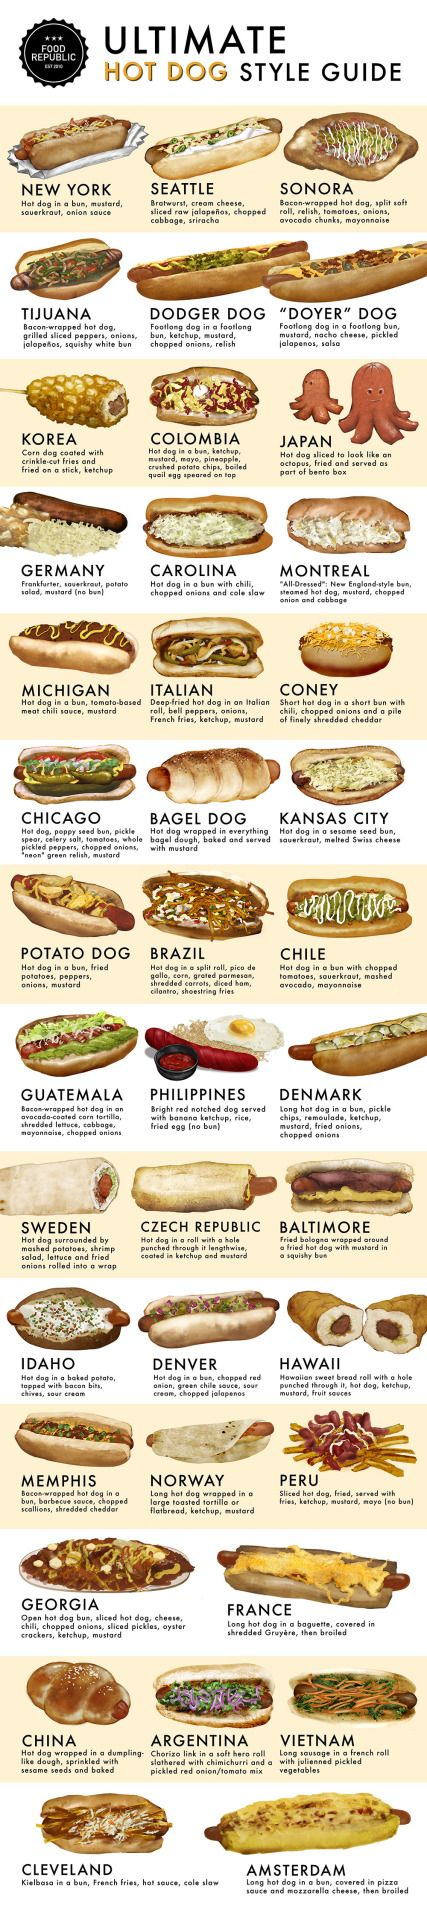 Pin su varie for Cucinare hot dog